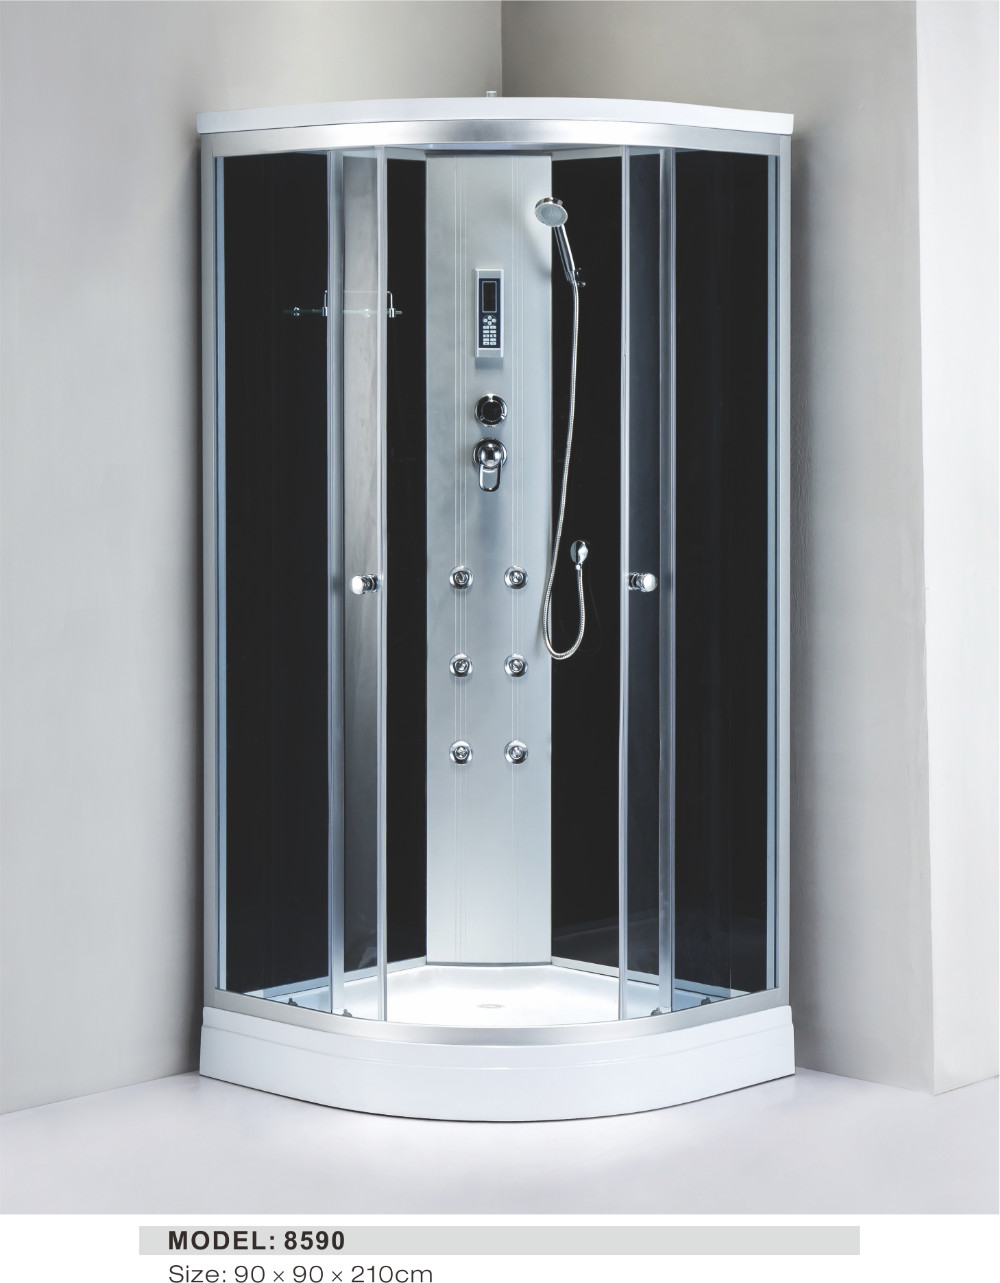 Glass Box Doccia.Big Size Built In Tempered Glass Box Doccia Buy Tempered Glass Box Doccia Big Size Built In The Cheapest Massage Shower Room Big Size Built In